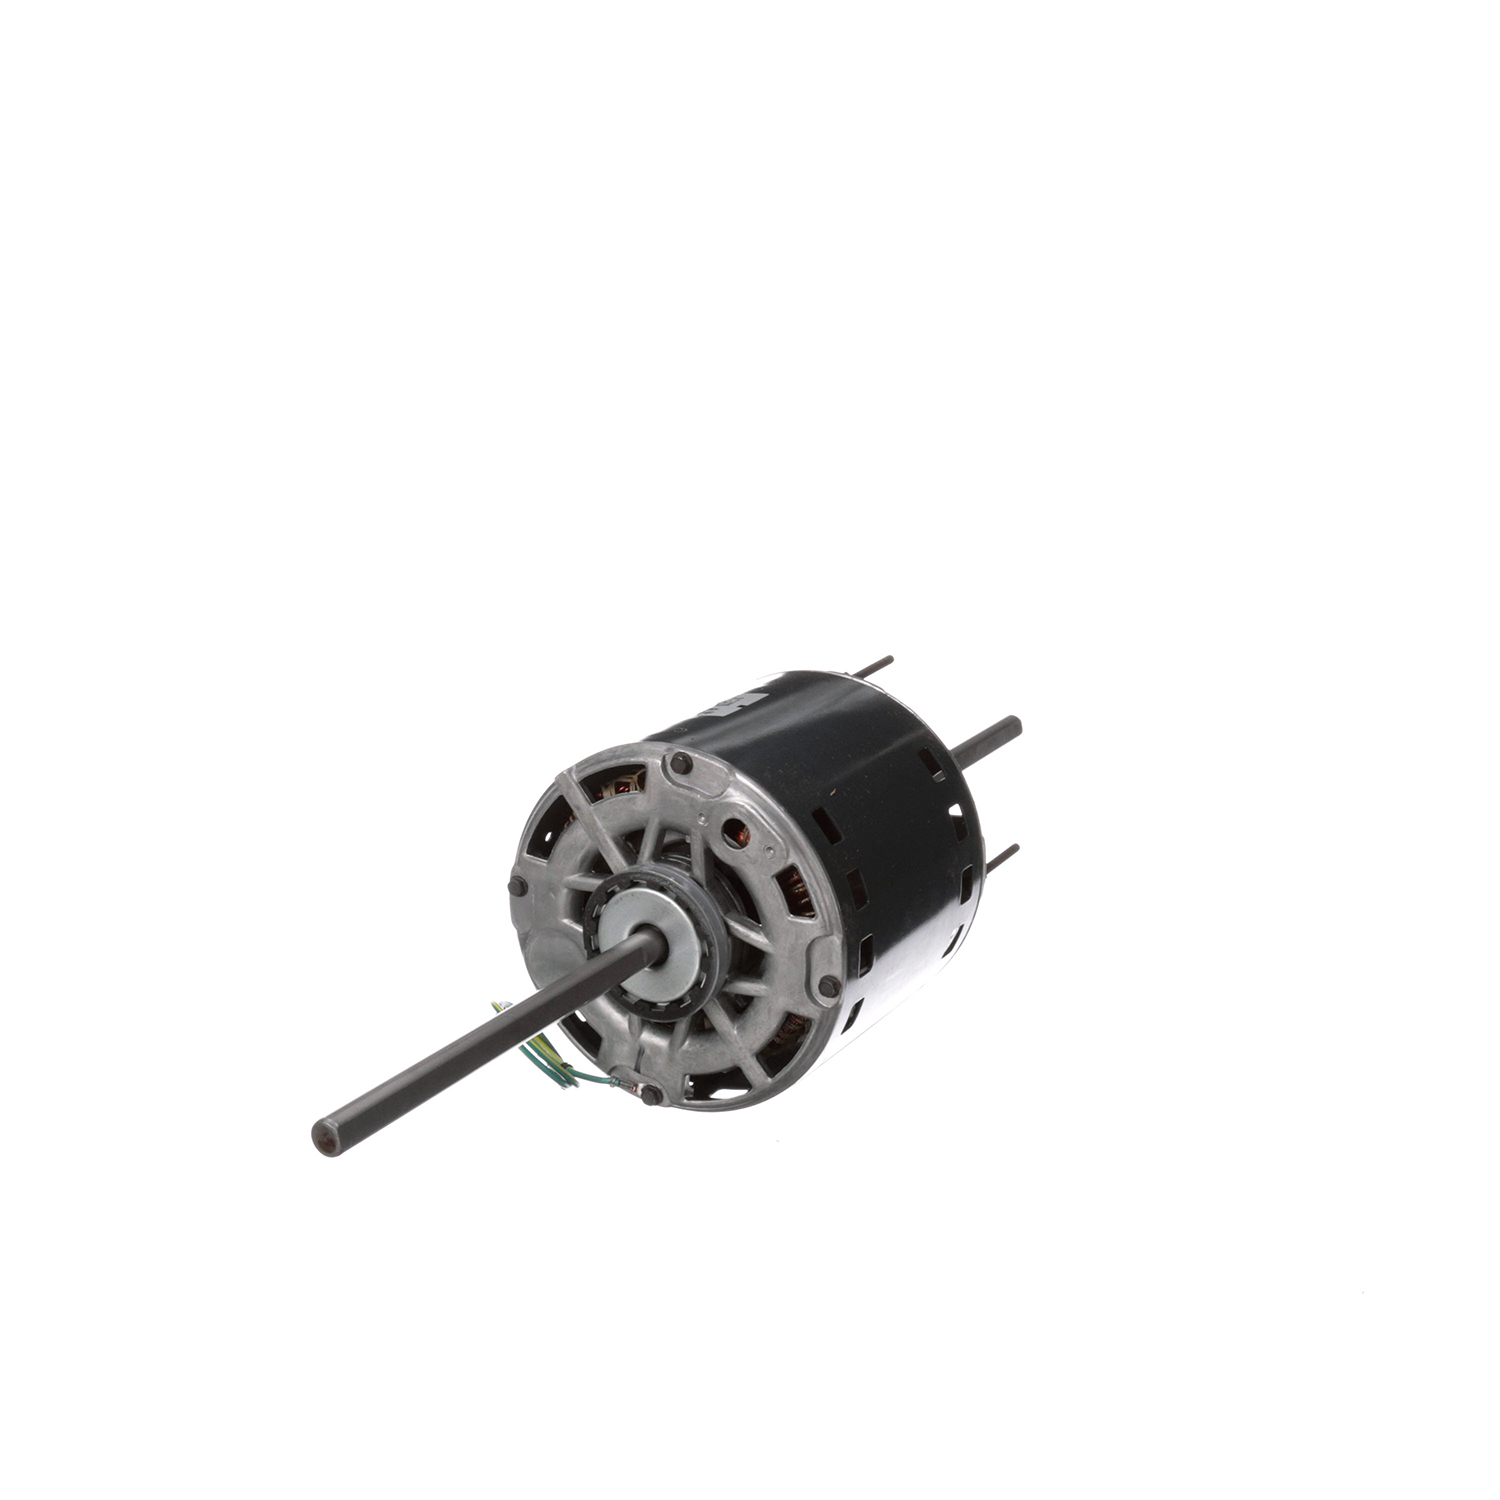 1/2 HP 1075 RPM/3 Spd 115 Volt Motor